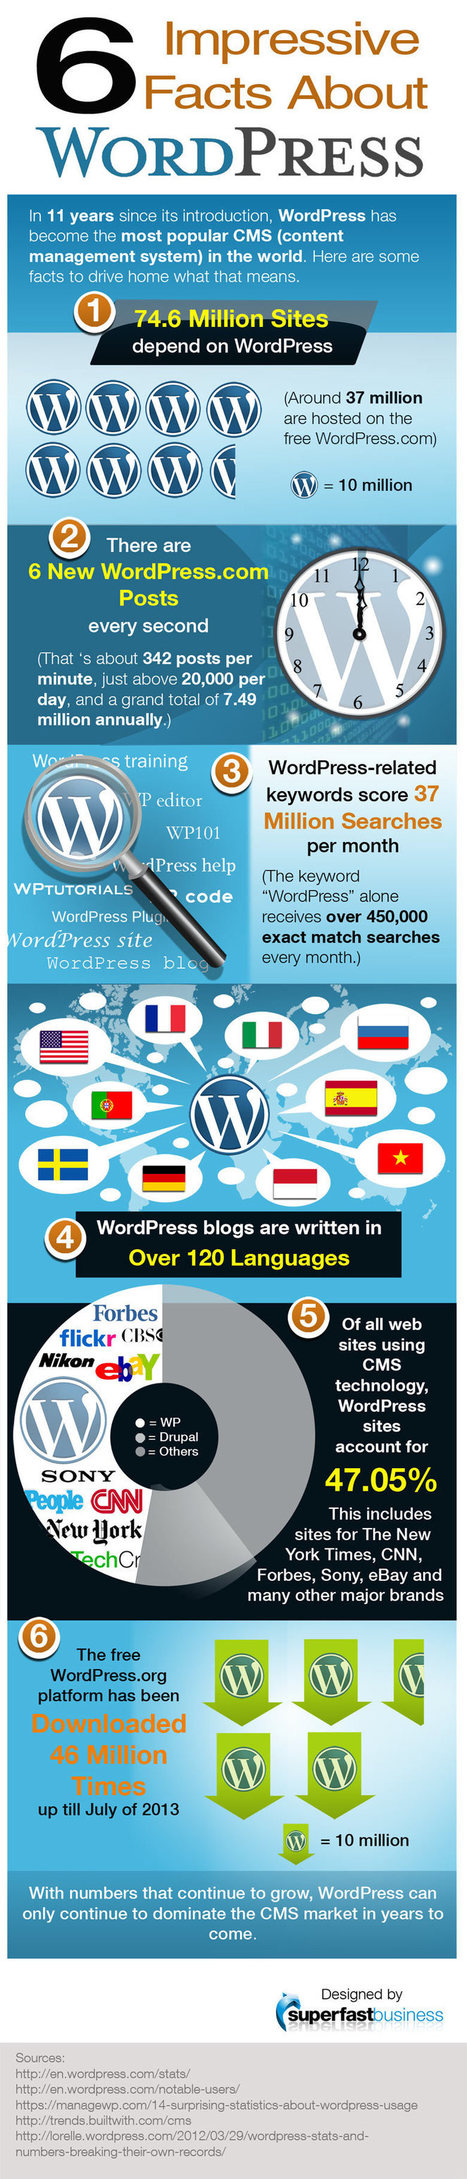 6 impressive facts about WordPress CMS Weblog | WordPress Google SEO and Social Media | Scoop.it